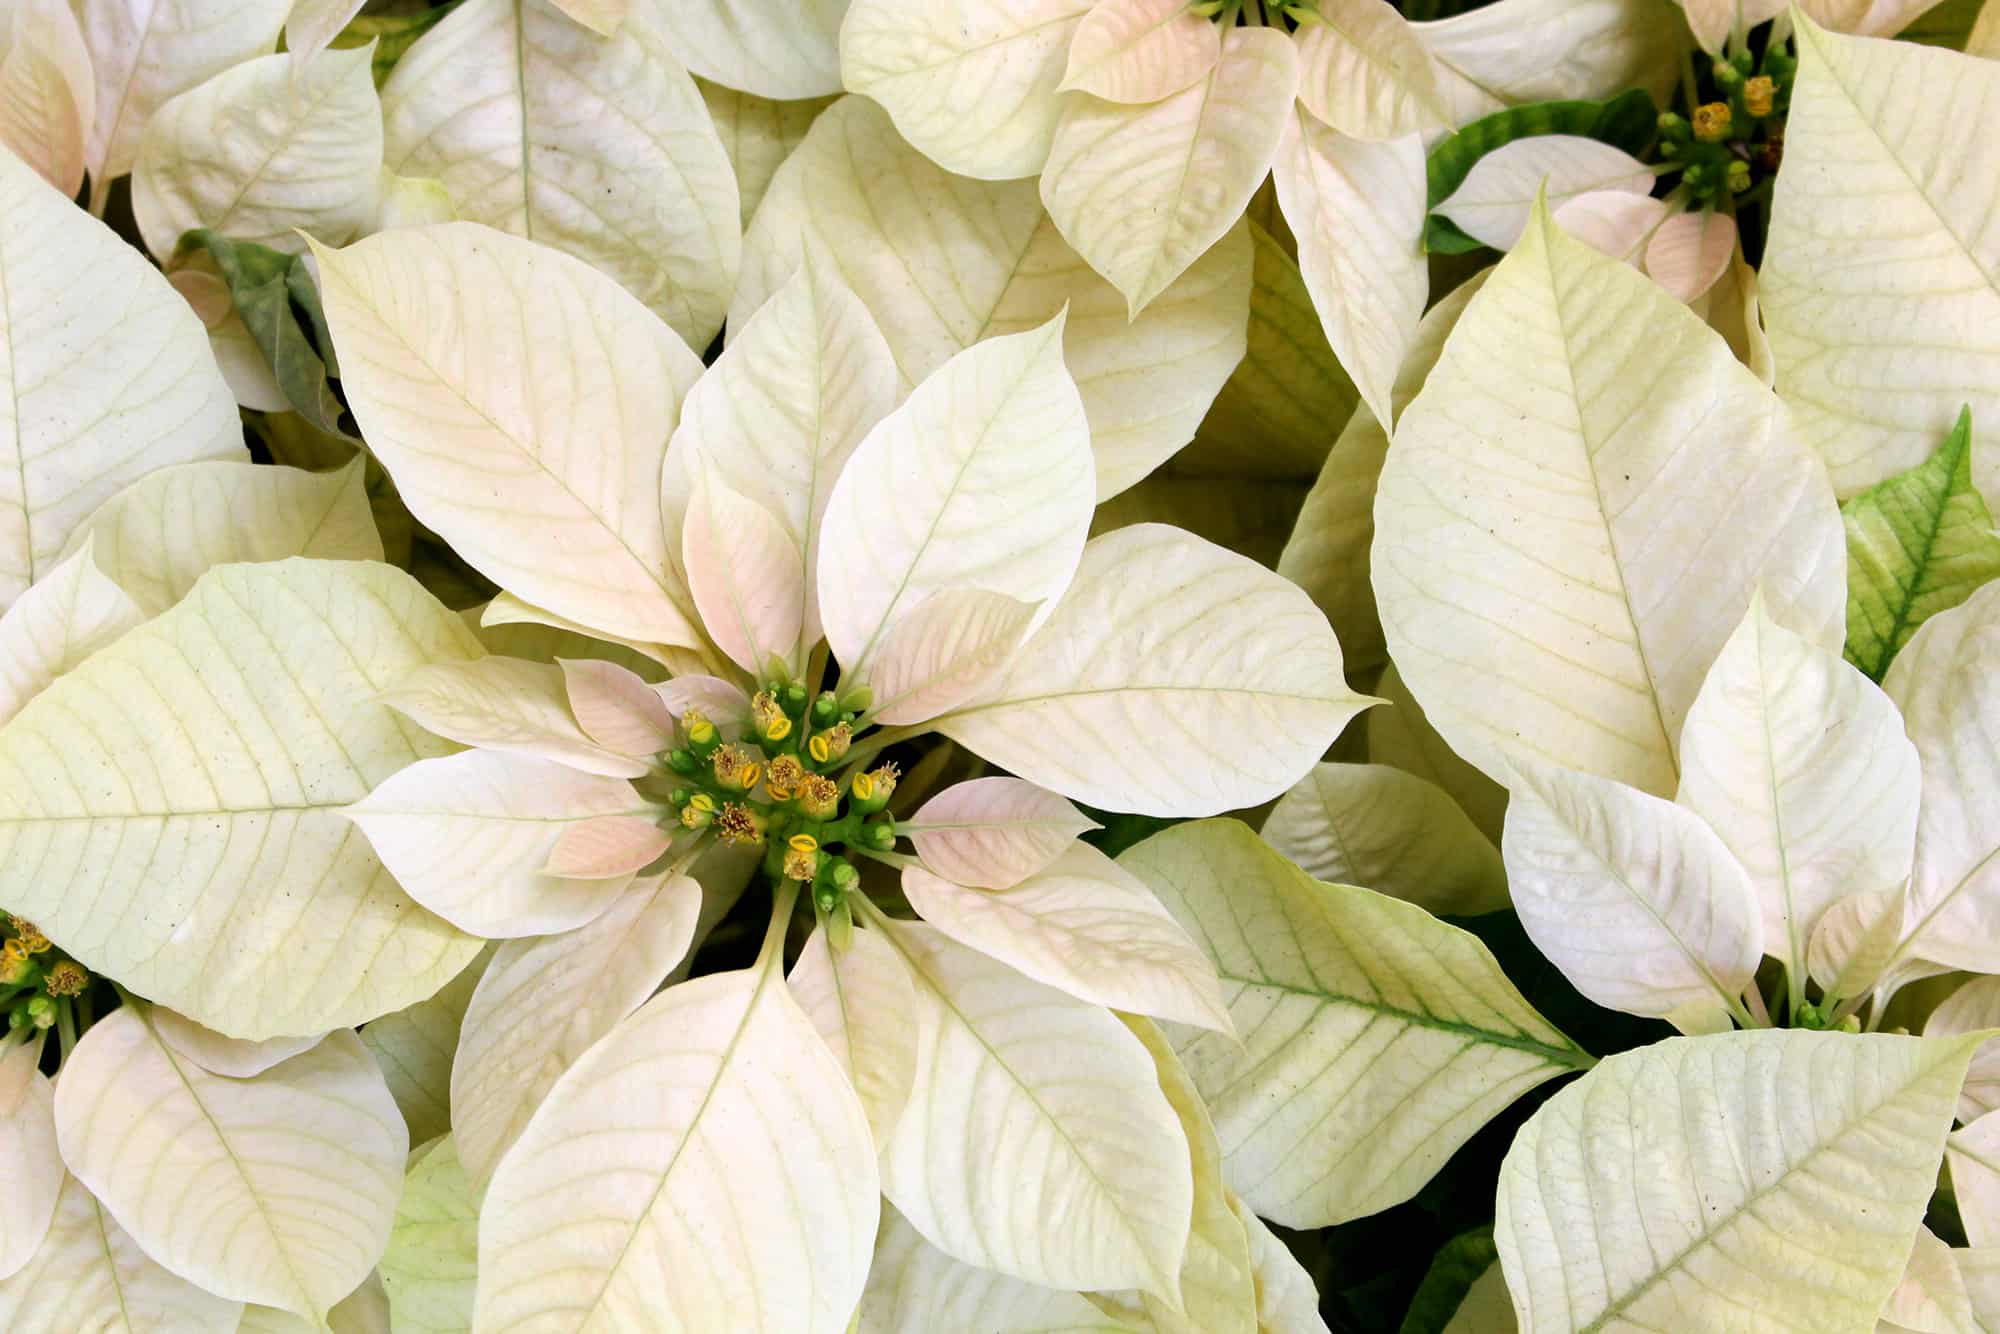 Poinsettia points to ponder plantscapers